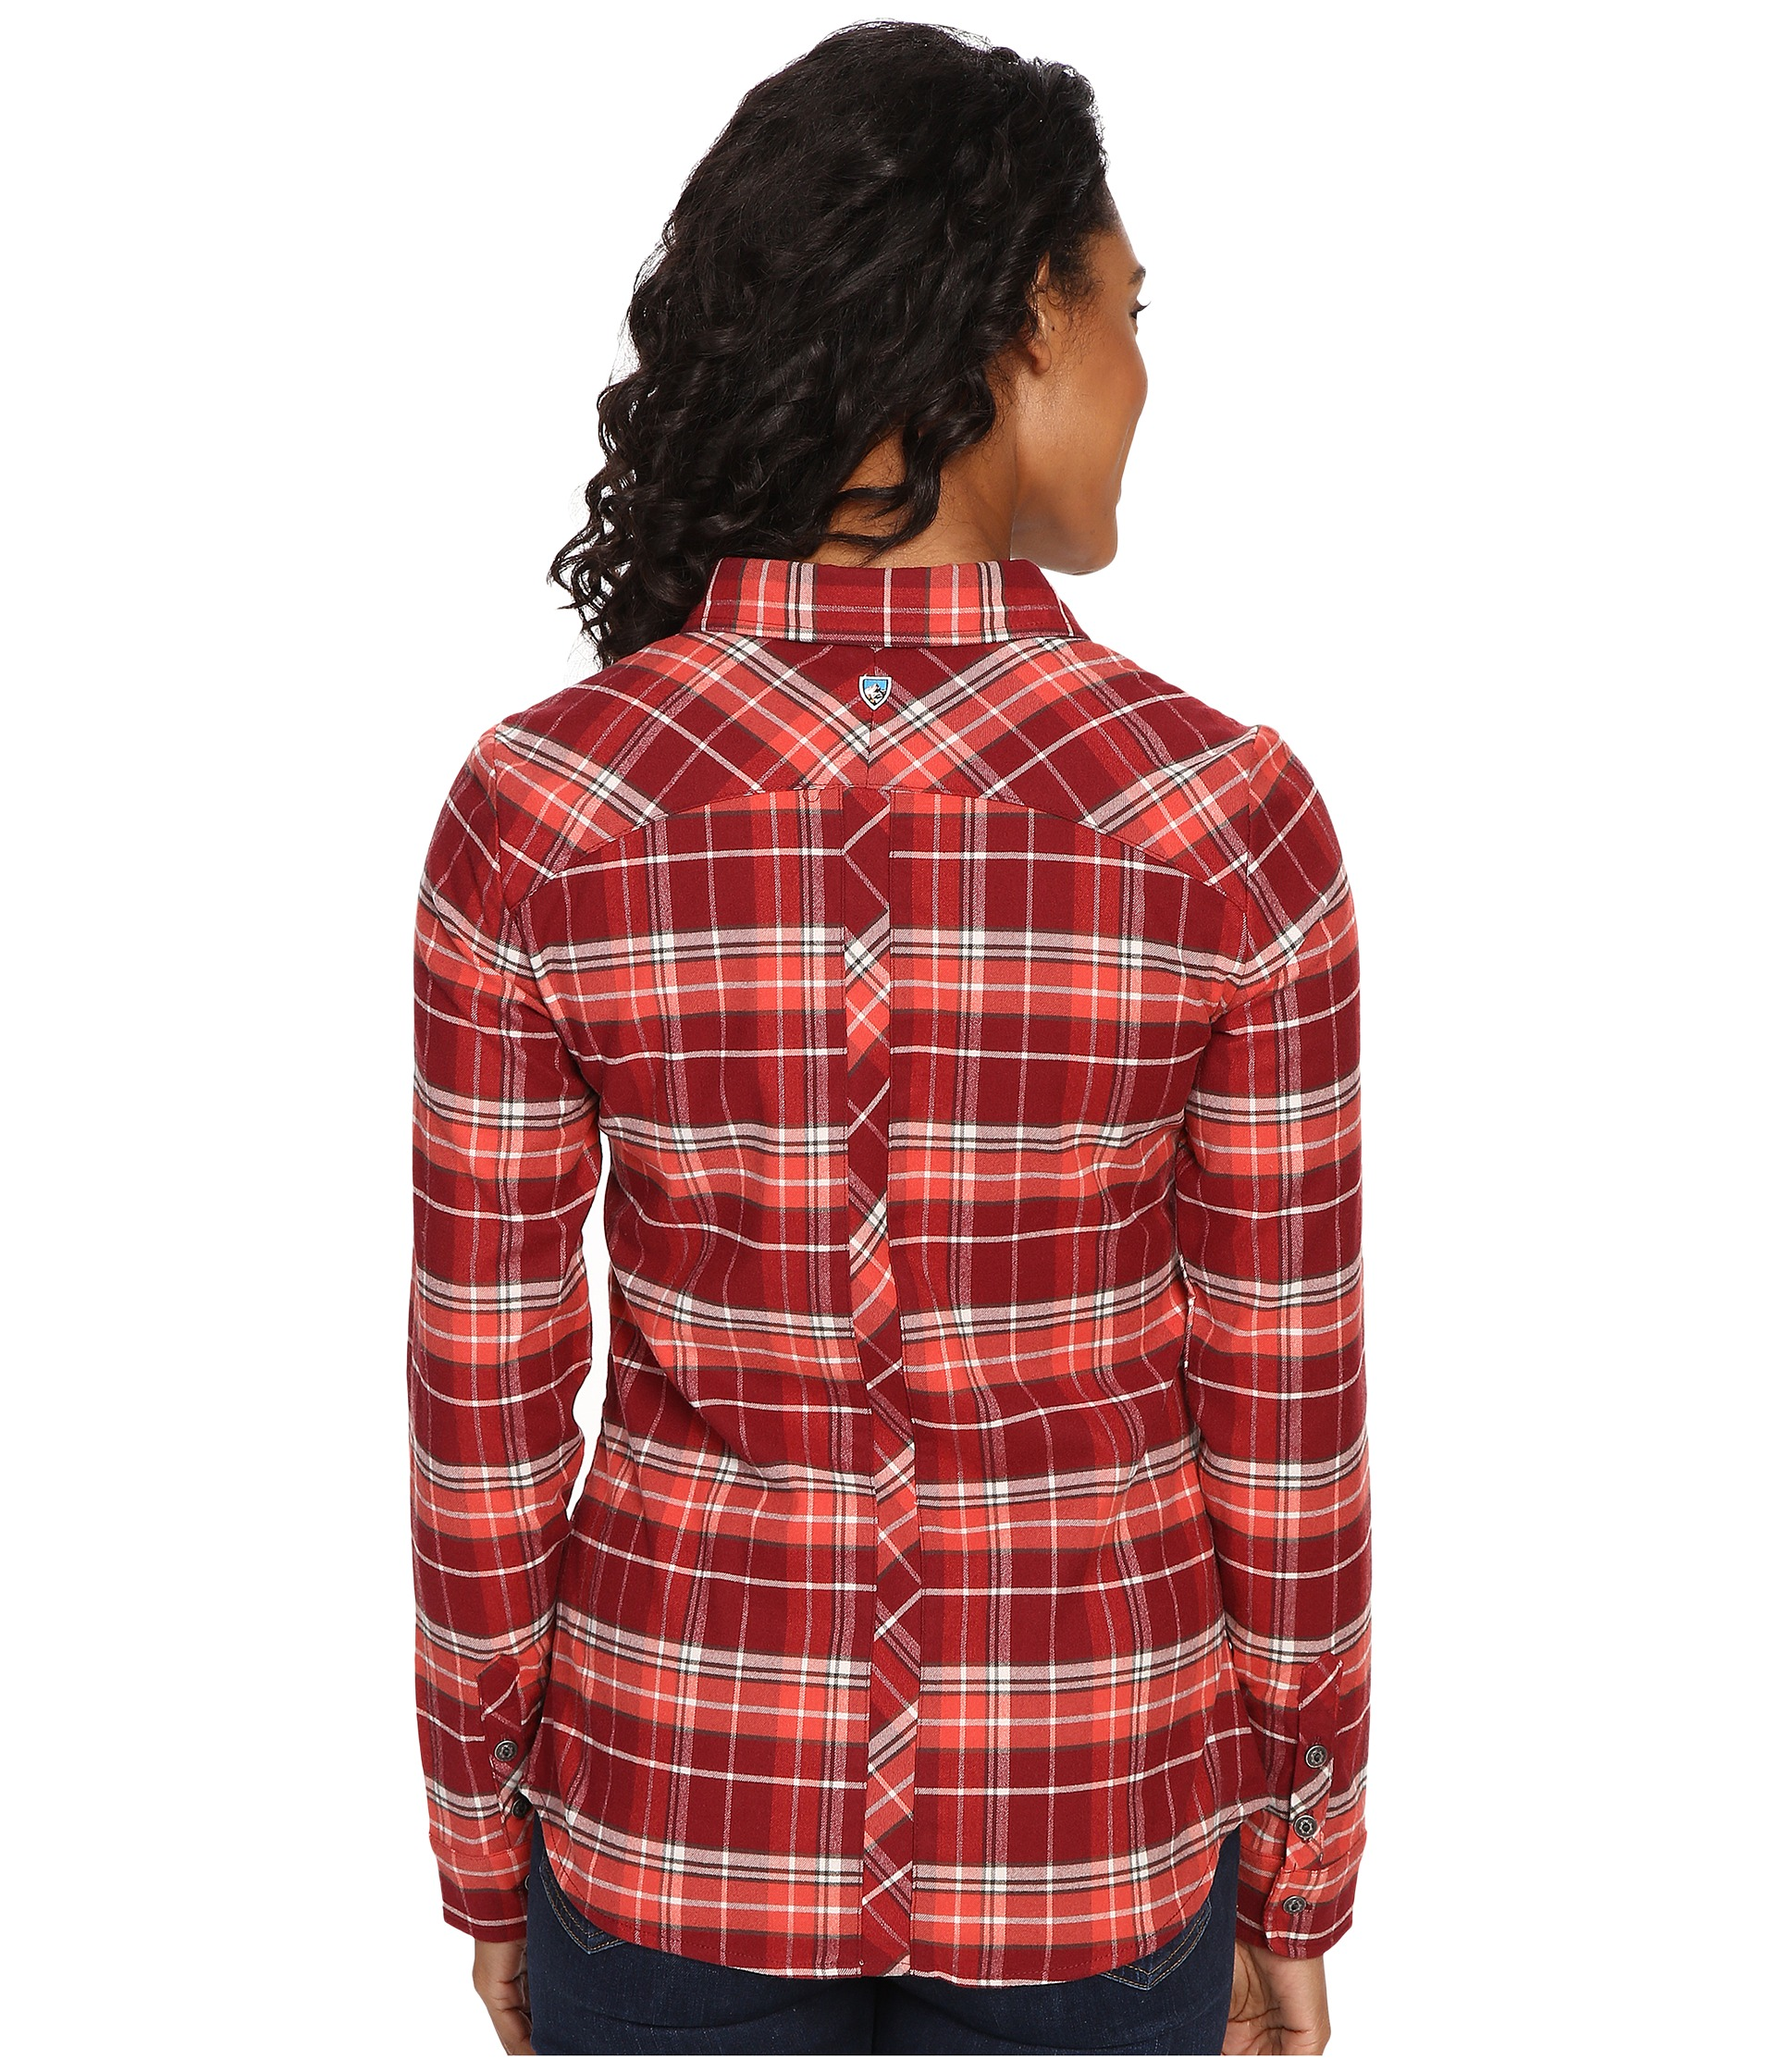 Kuhl alina flannel shirt red spice free for Athletic cut flannel shirts